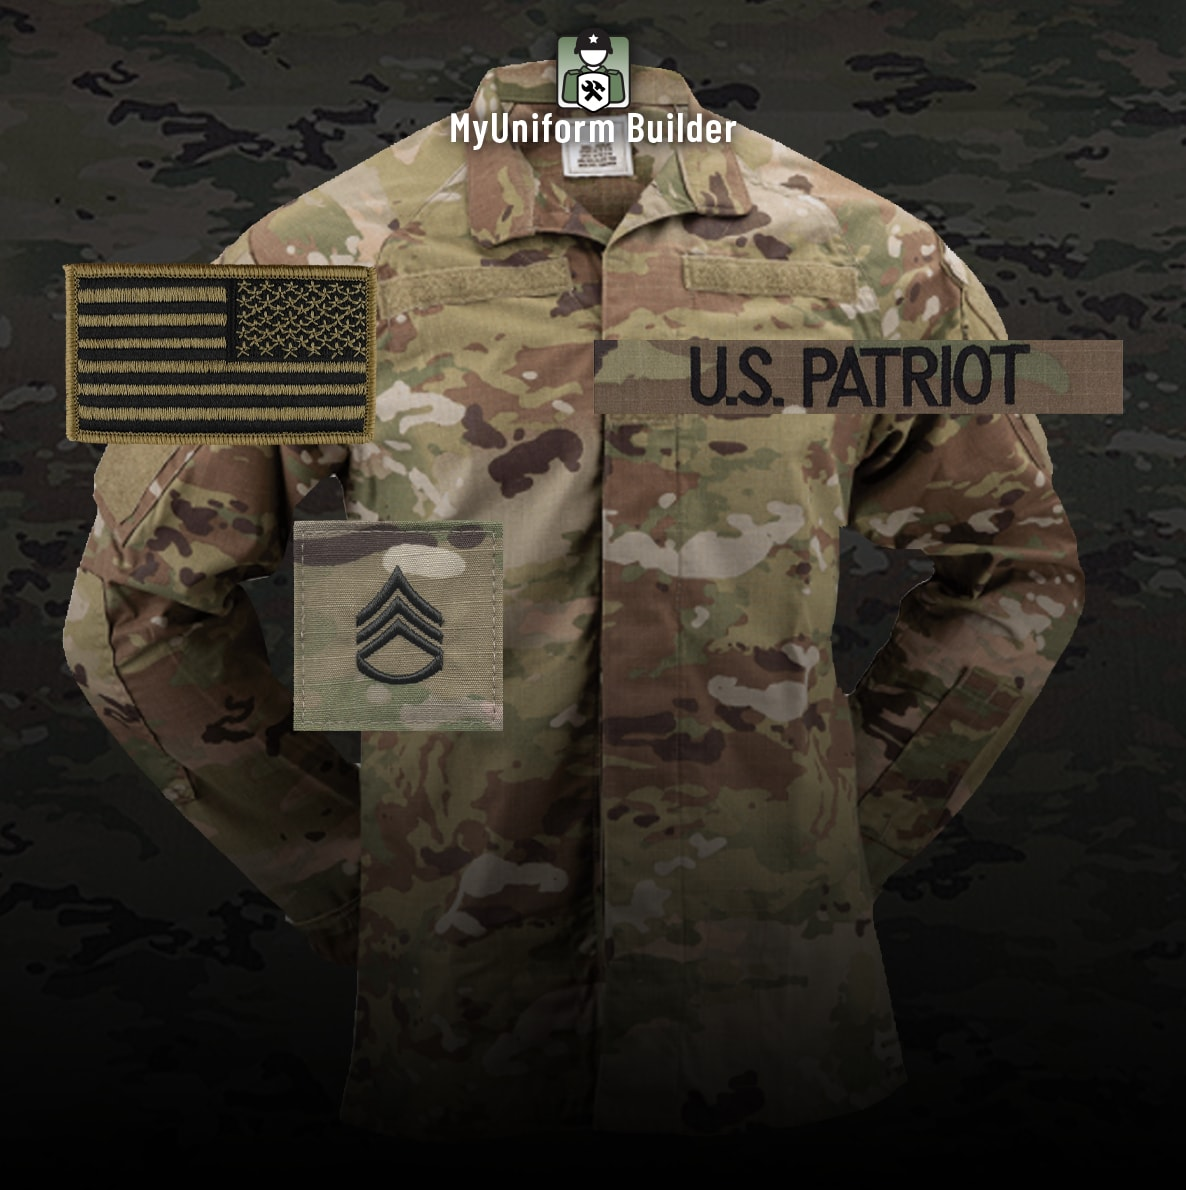 MyUniform Builder Powered by USPatriot.com